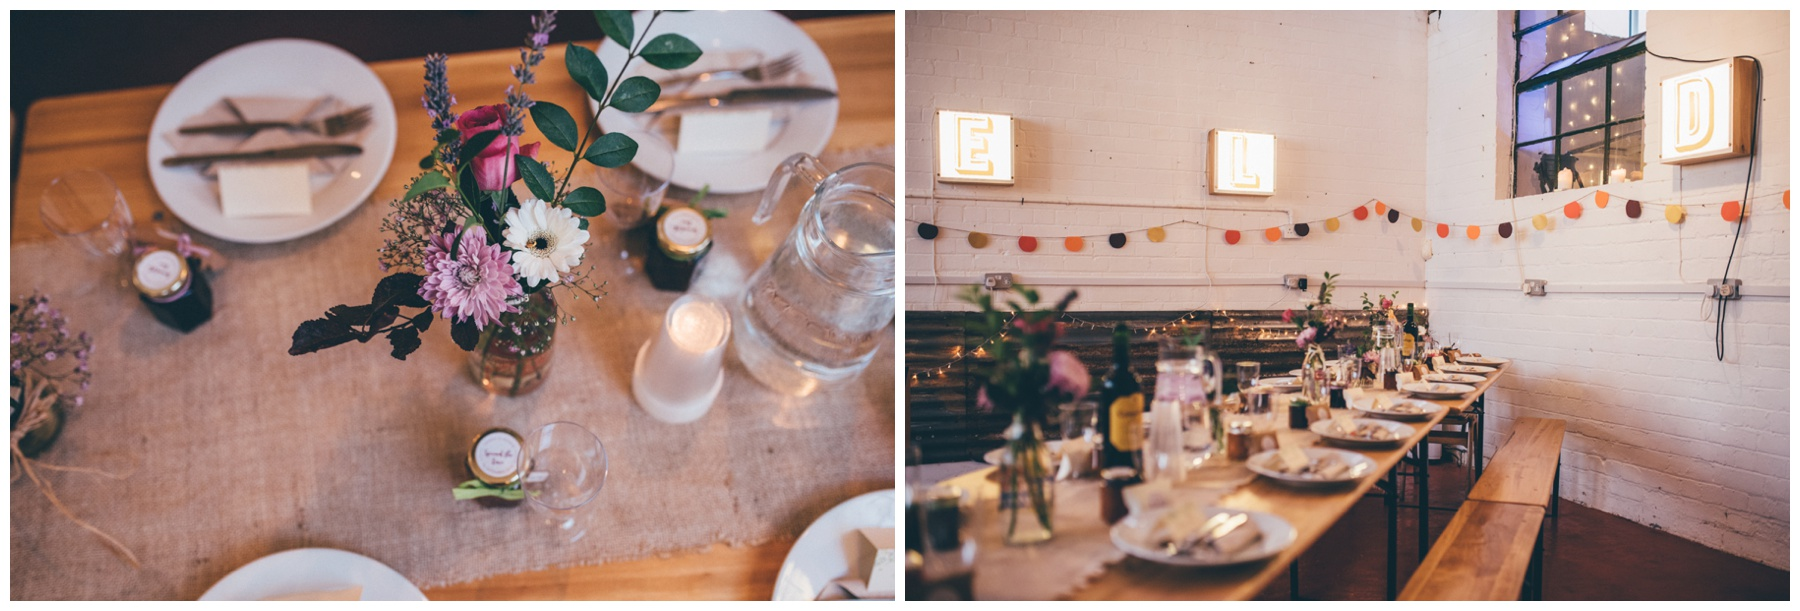 DIY table decorations at the creative wedding venue in Sheffield, The Hide.